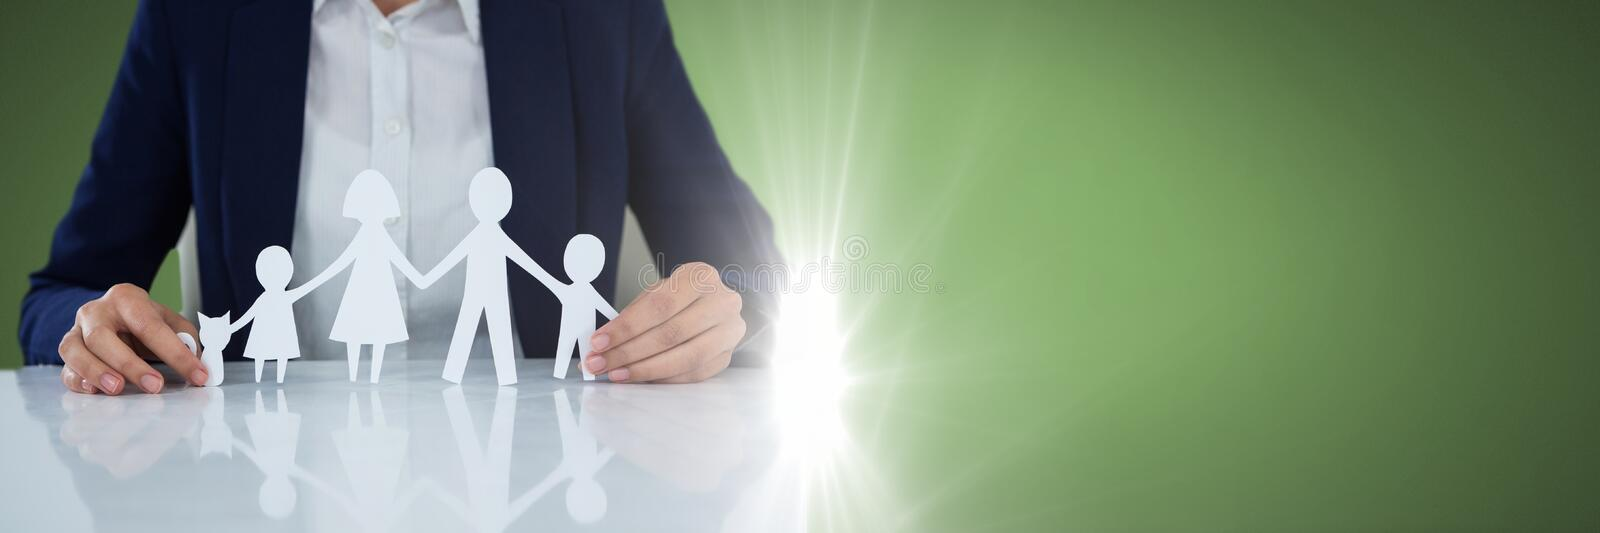 Paper Cut Out family in hands stock image